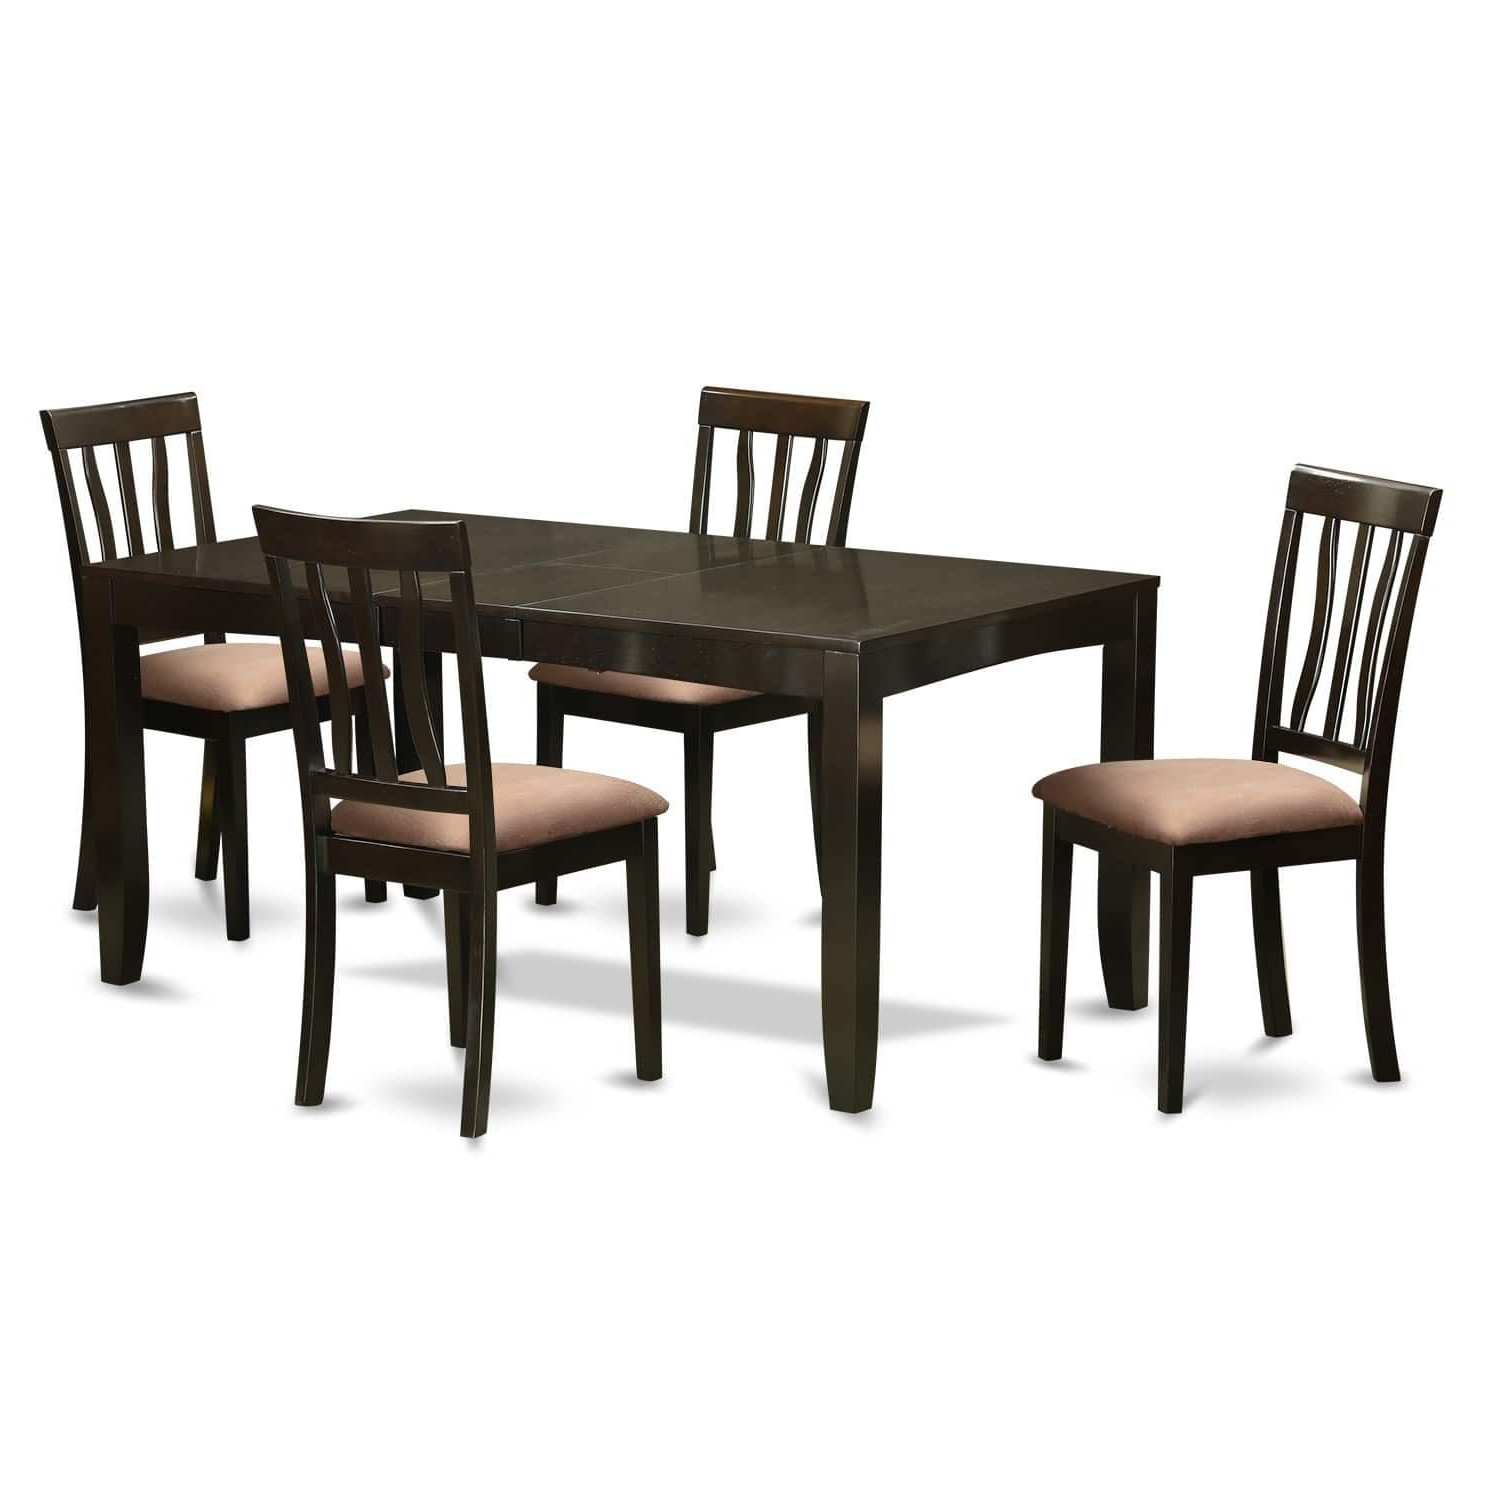 Well Known Smyrna 3 Piece Dining Sets With Regard To Lyan5 Cap 5 Pc Dining Set For 4  Tables With Leaf And 4 Chairs (View 24 of 25)